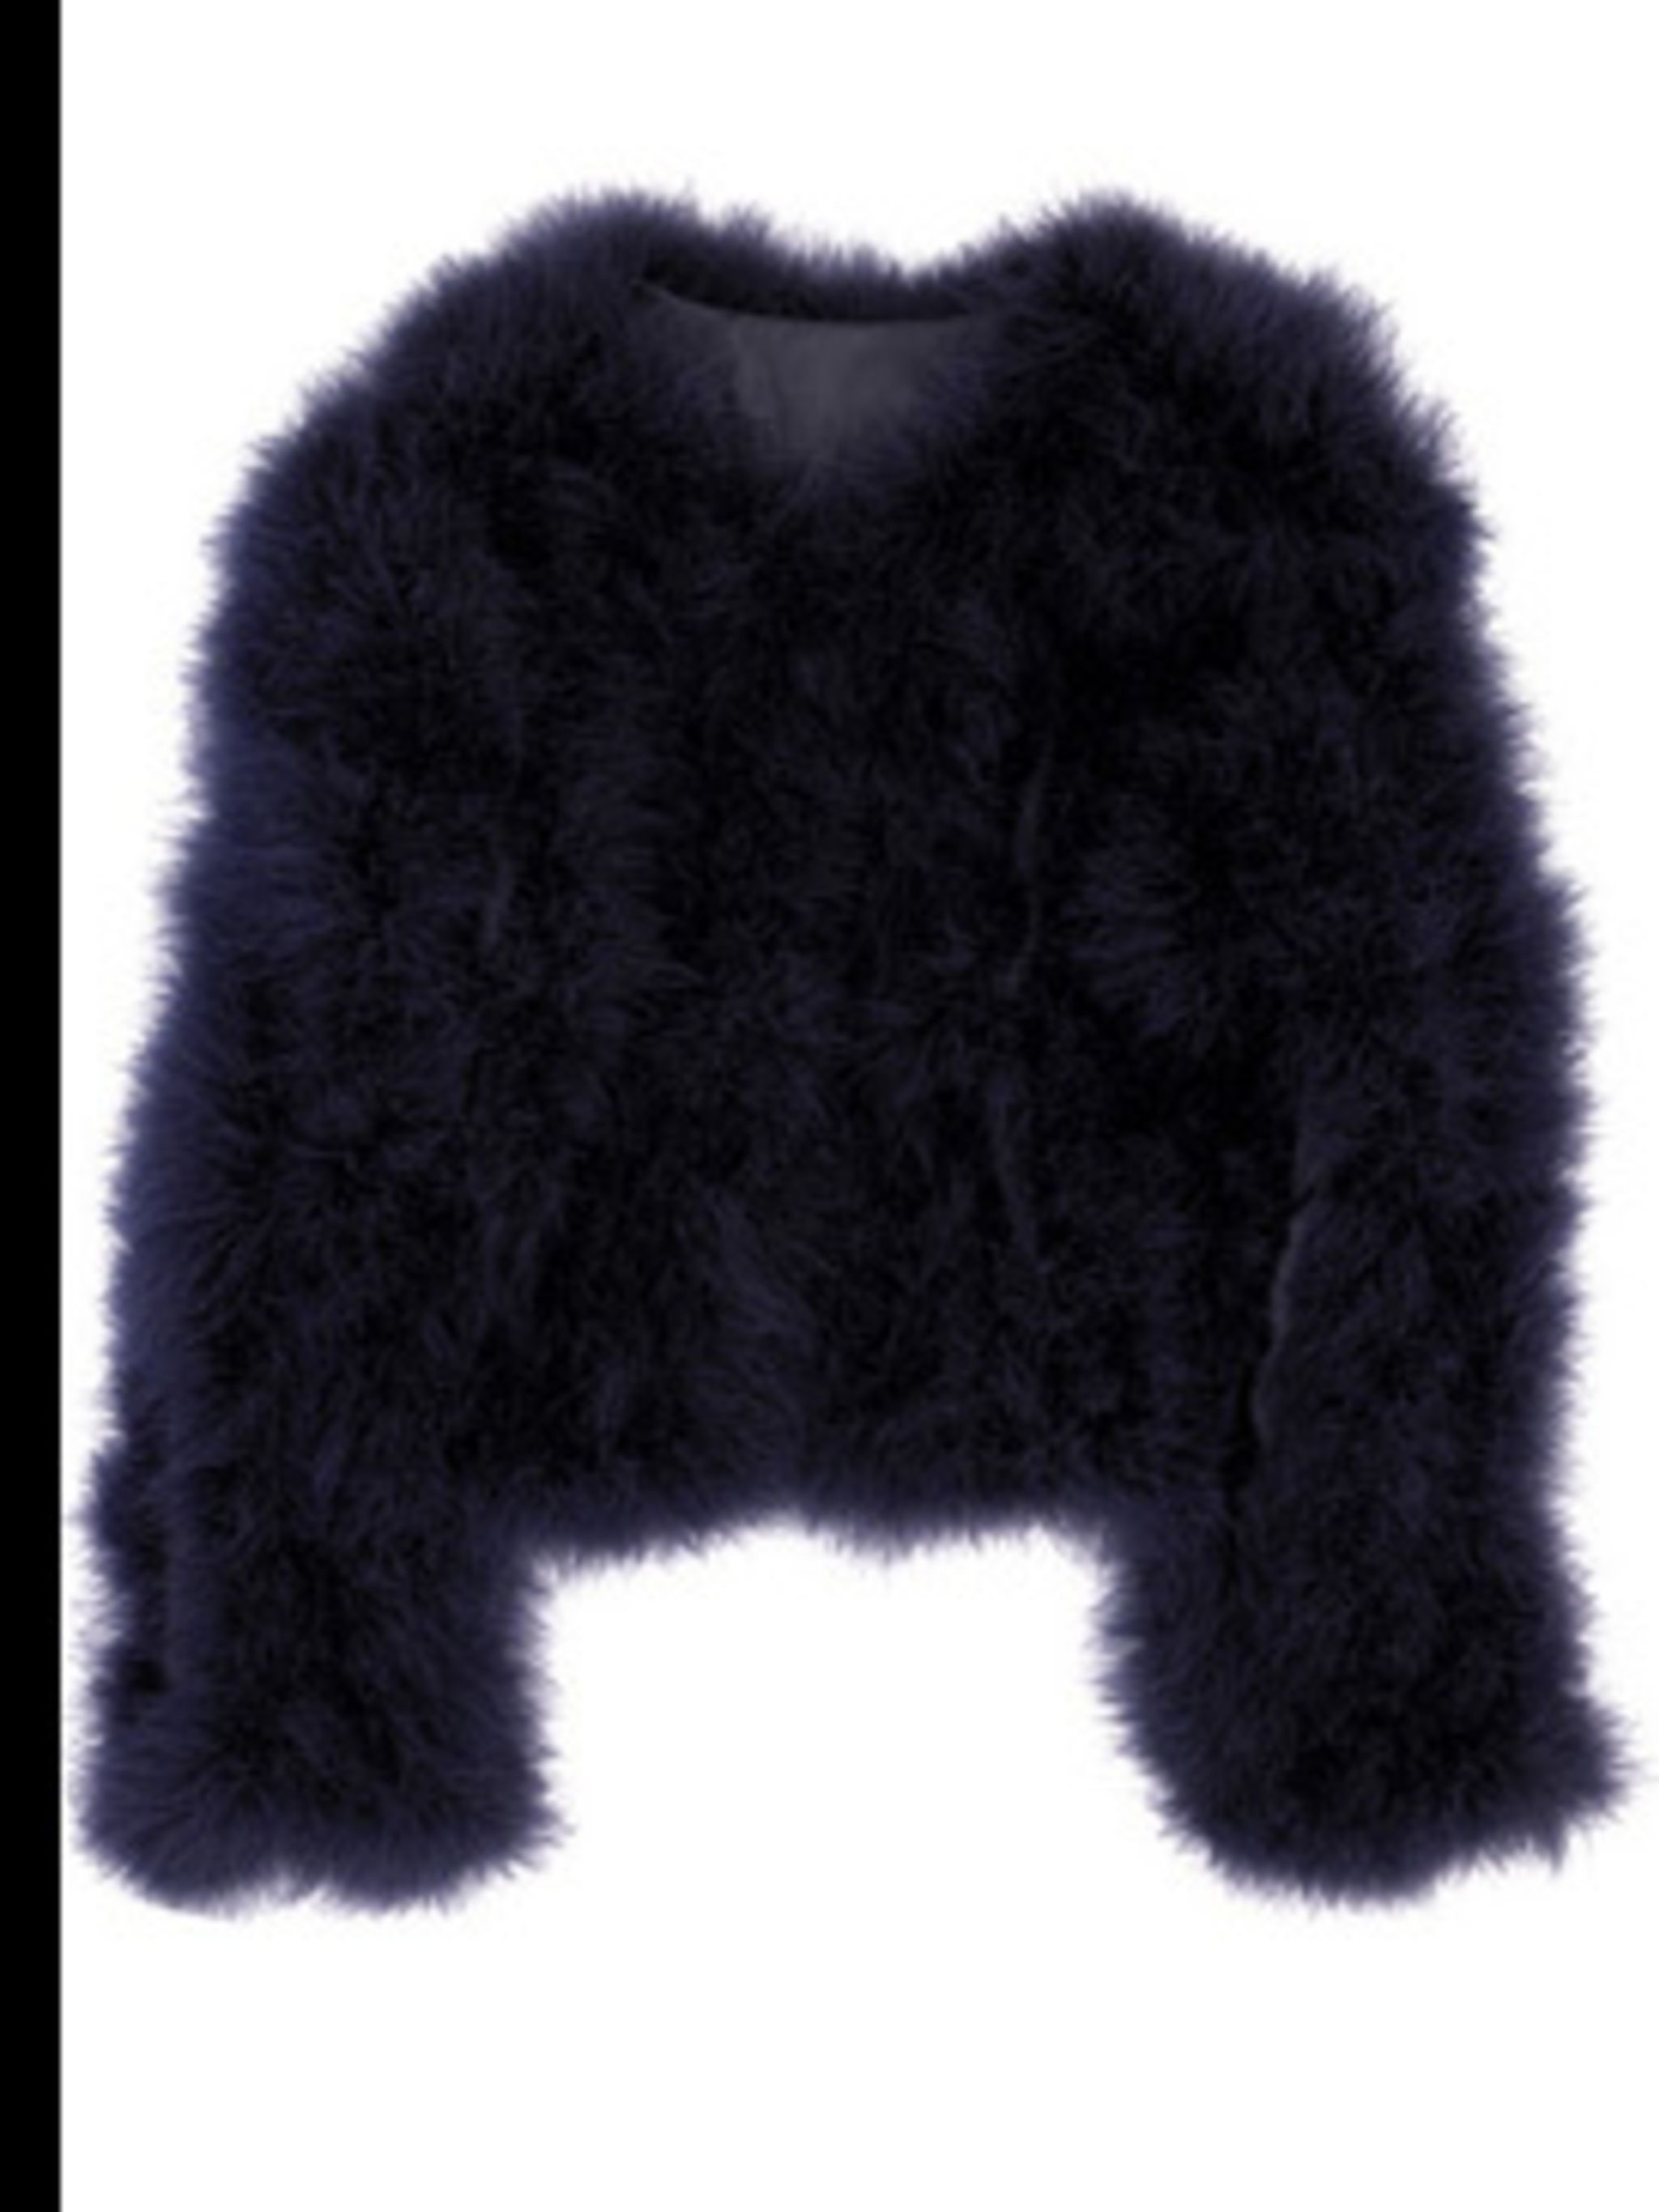 """<p>Coat, £445.00 from Vanessa Bruno at <a href=""""http://www.net-a-porter.com/product/34980"""">Net-a-Porter</a></p>"""